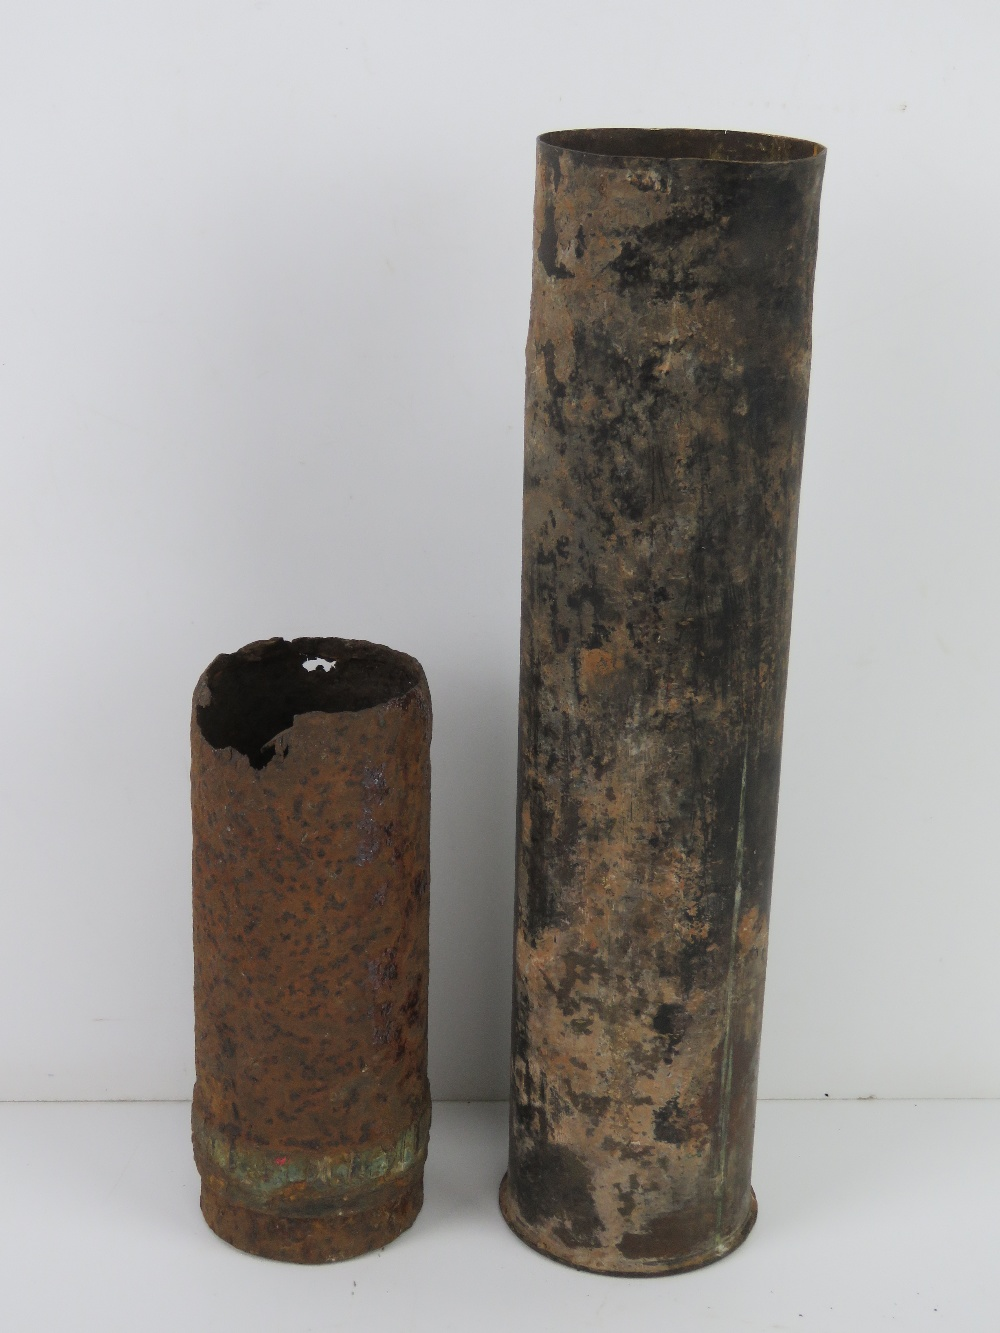 A relic WWI 7.5cm shell casing.